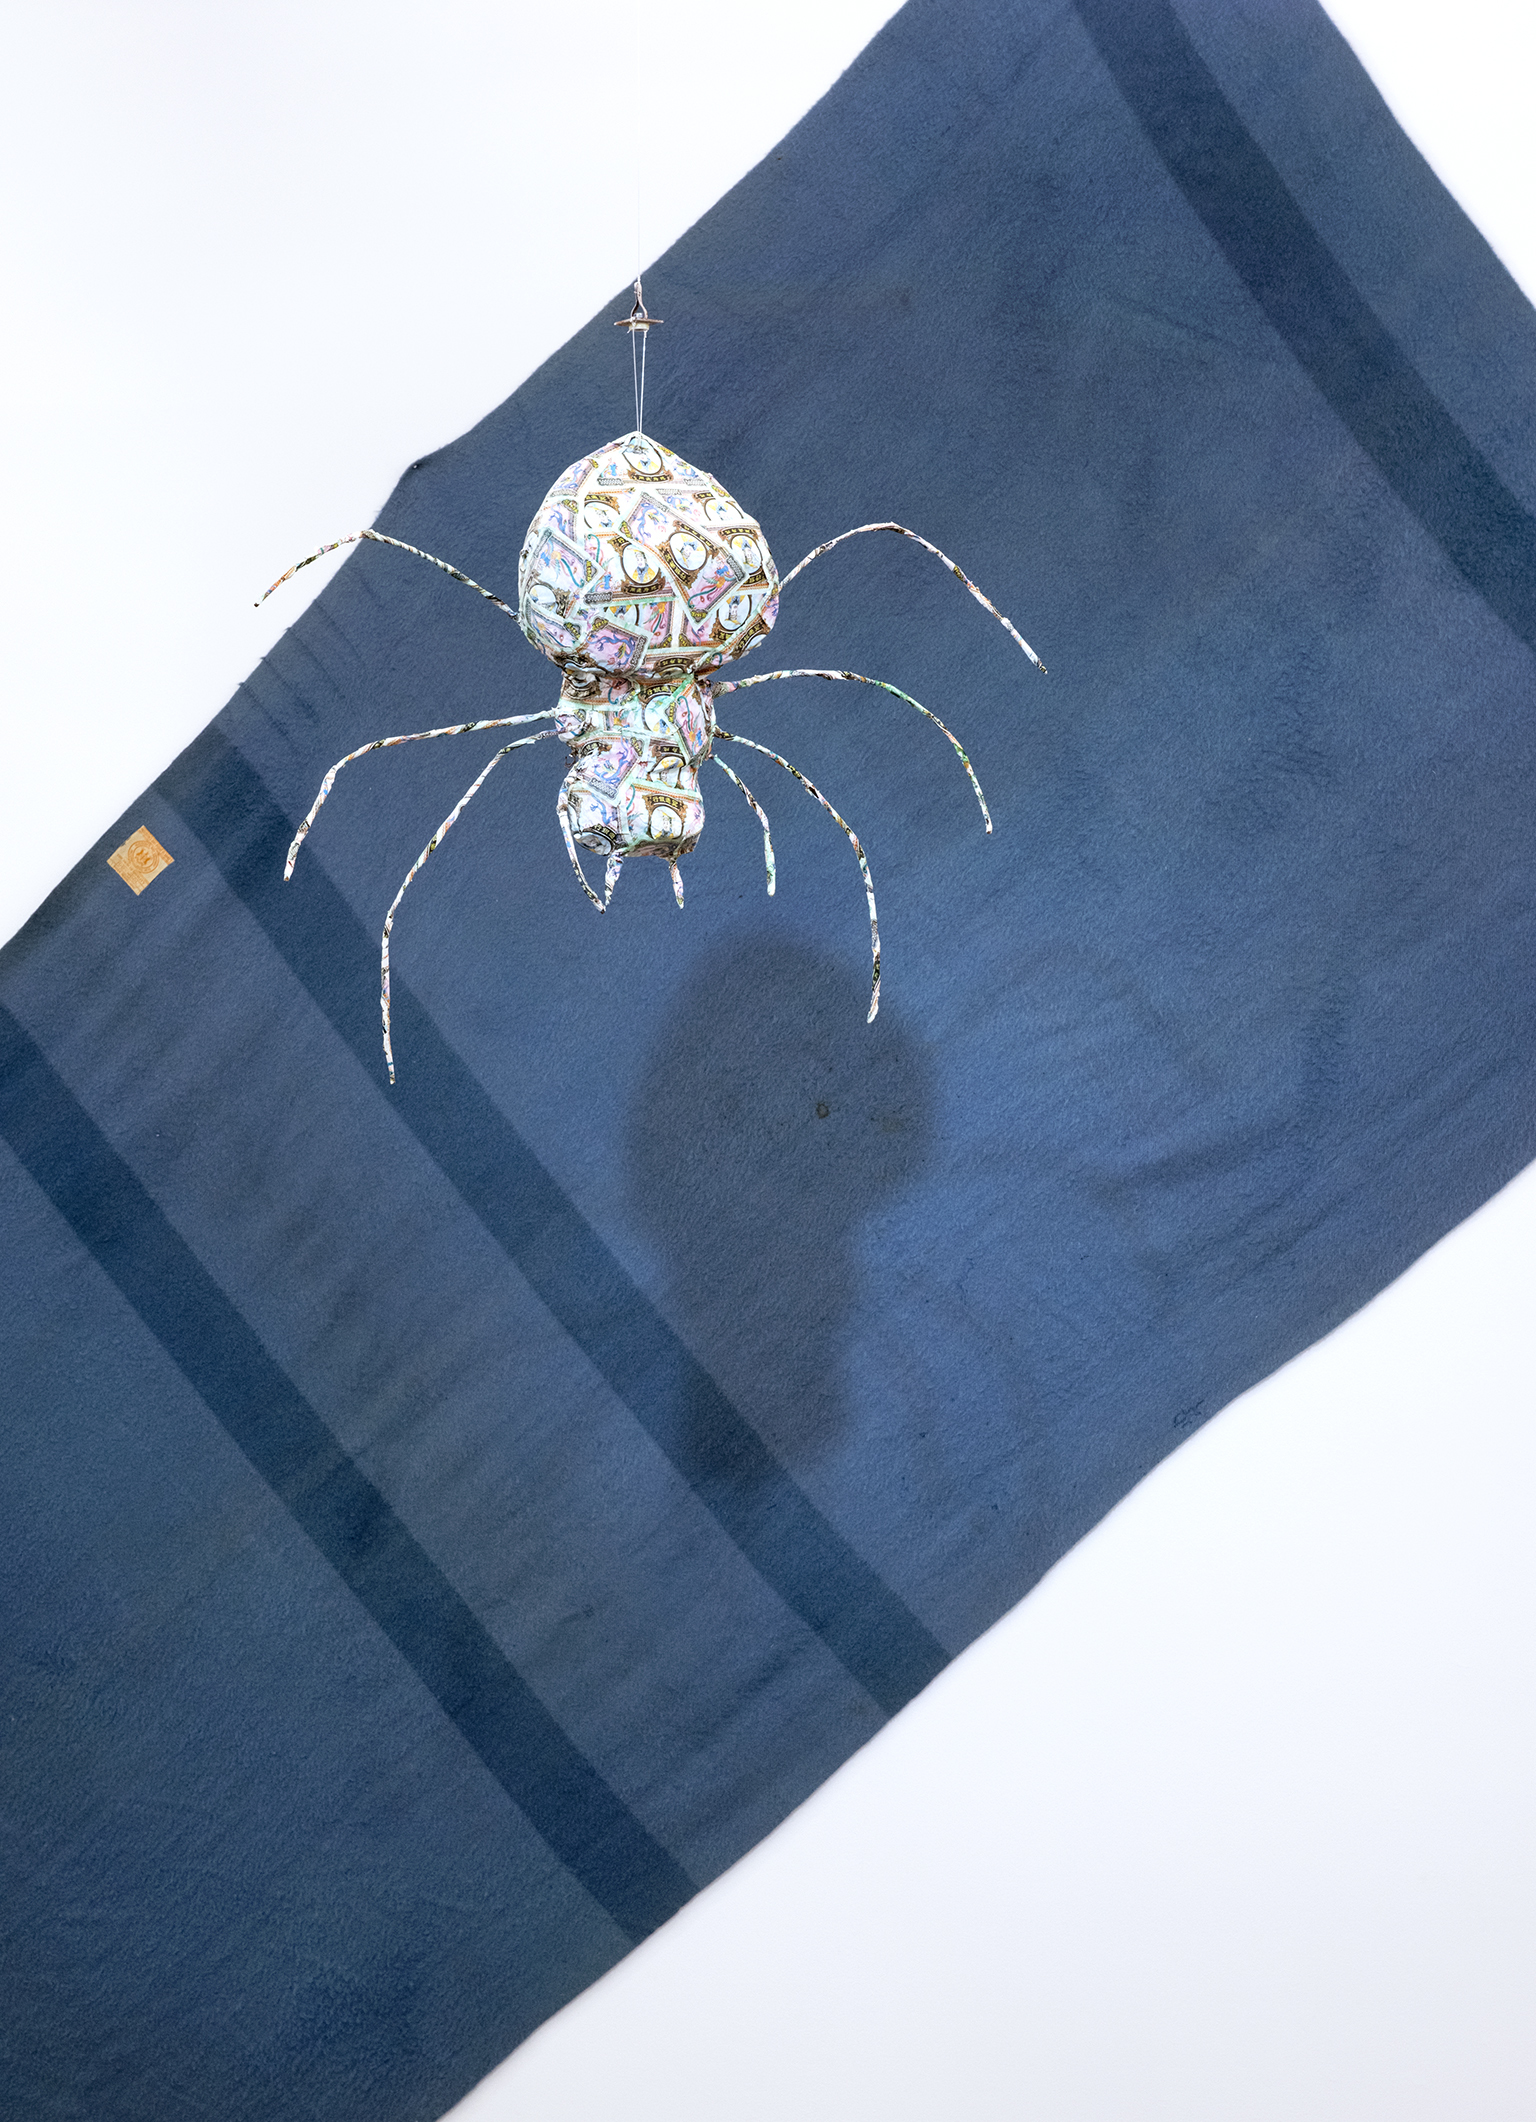 Jerry Pethick, Bigger than a book, Wilder than a Tree (detail), 1994–1997, found book Irish Giant, paint, graphite on linen, styrofoam, cibachrome photograph, wool blanket, spotlight, papier-mâché, metal spider, dimensions variable by